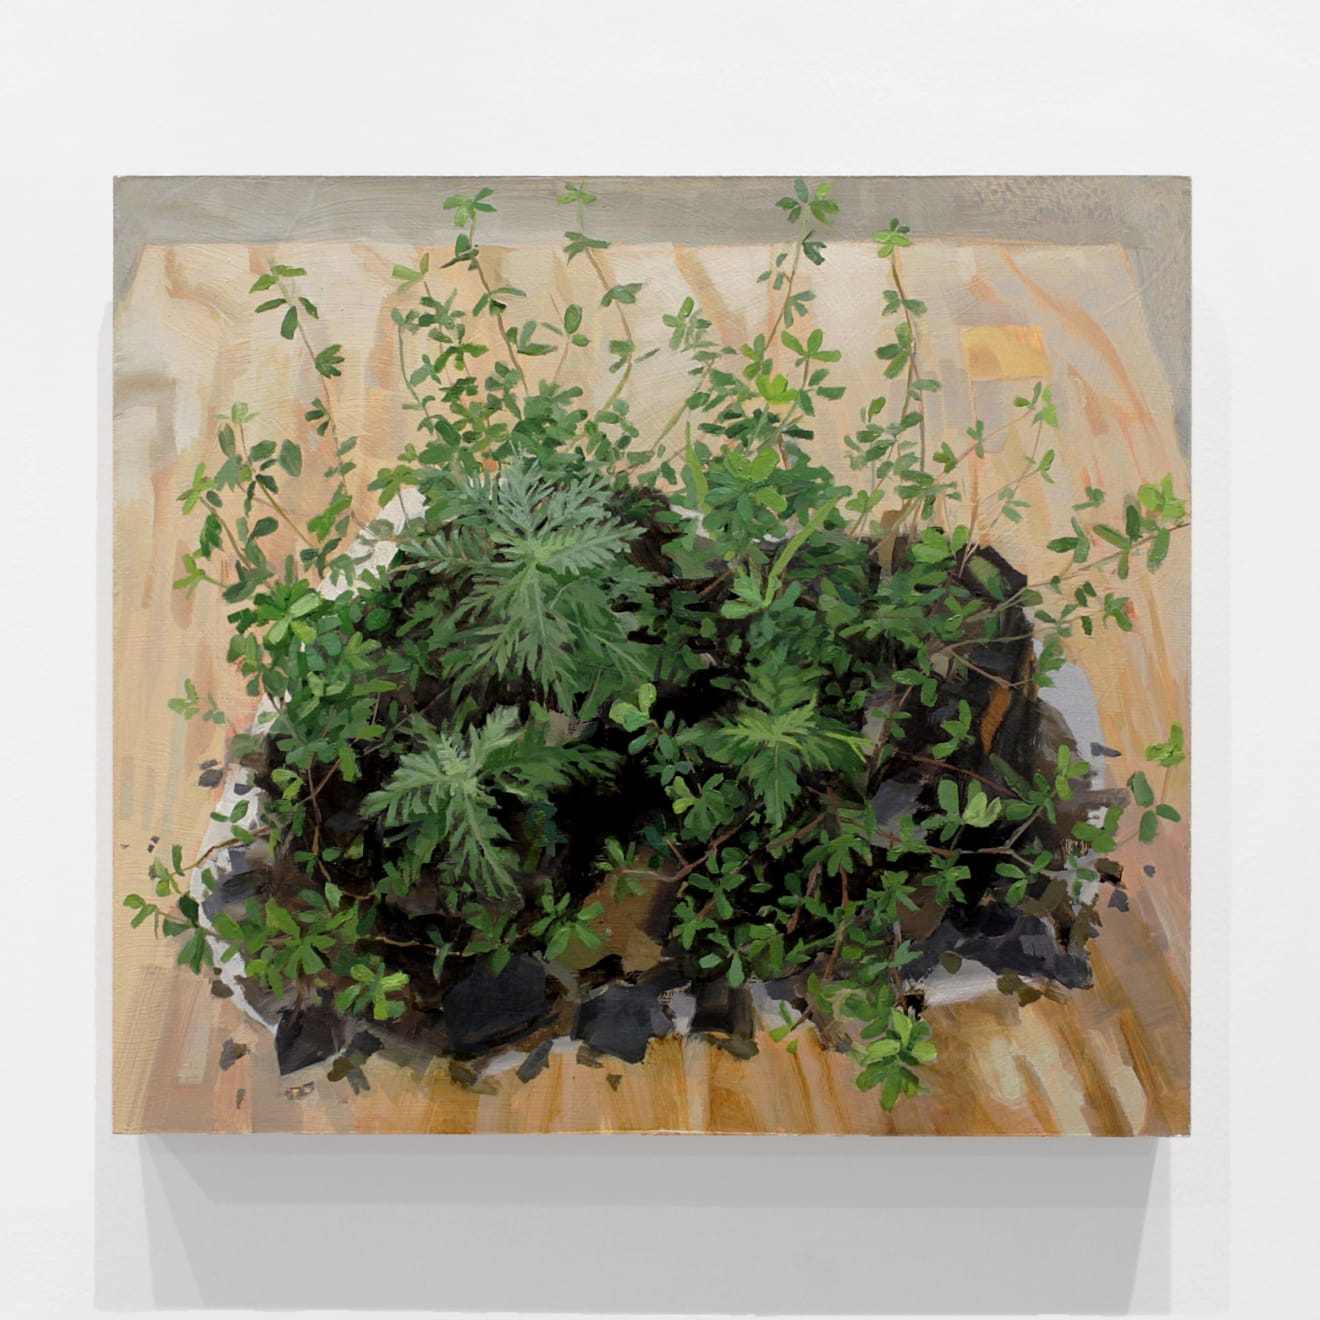 Kristin Musgnug Small Ragweed and Hop Clover from Logging Road, 2017 oil and acrylic on panel 16 x 18 x 1 1/2 in (40.6 x 45.7 x 3.8 cm) KM 227 $4,250